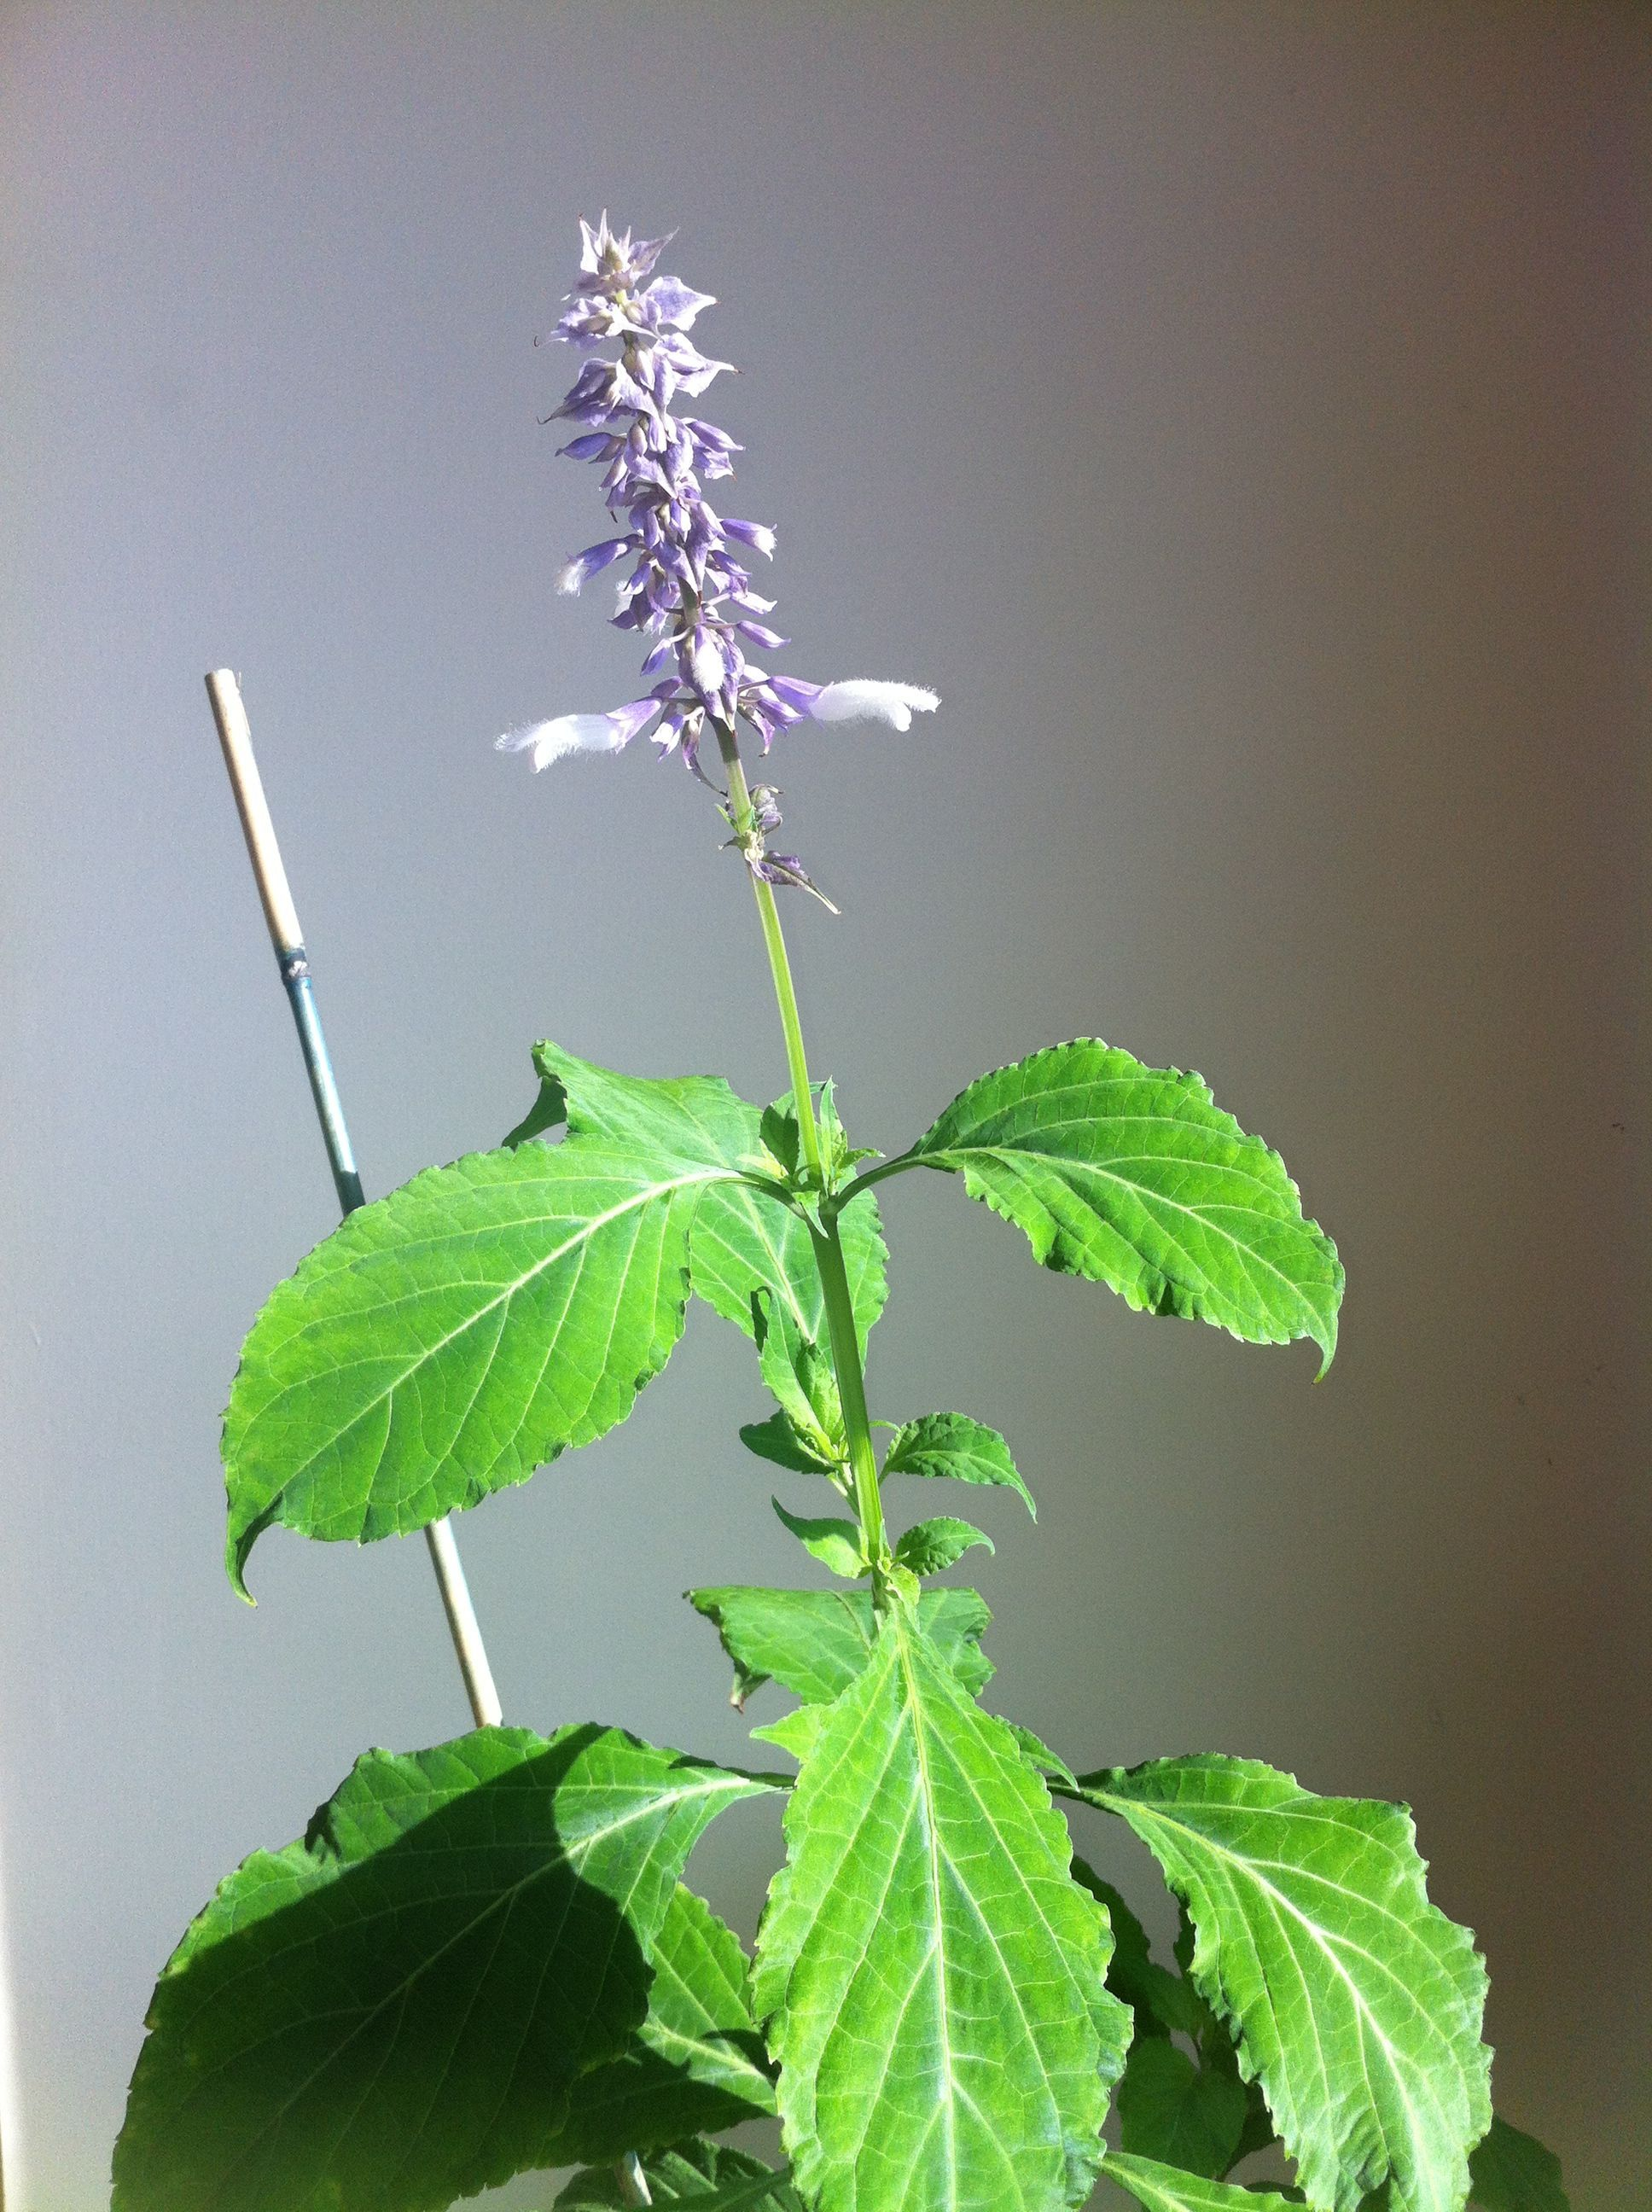 Salvia Flower this is Salvia Divinorum which produced Two viable seeds in Nov 2  Salvia Flower this is Salvia Divinorum which produced Two viable seeds in Nov 2014 plante...